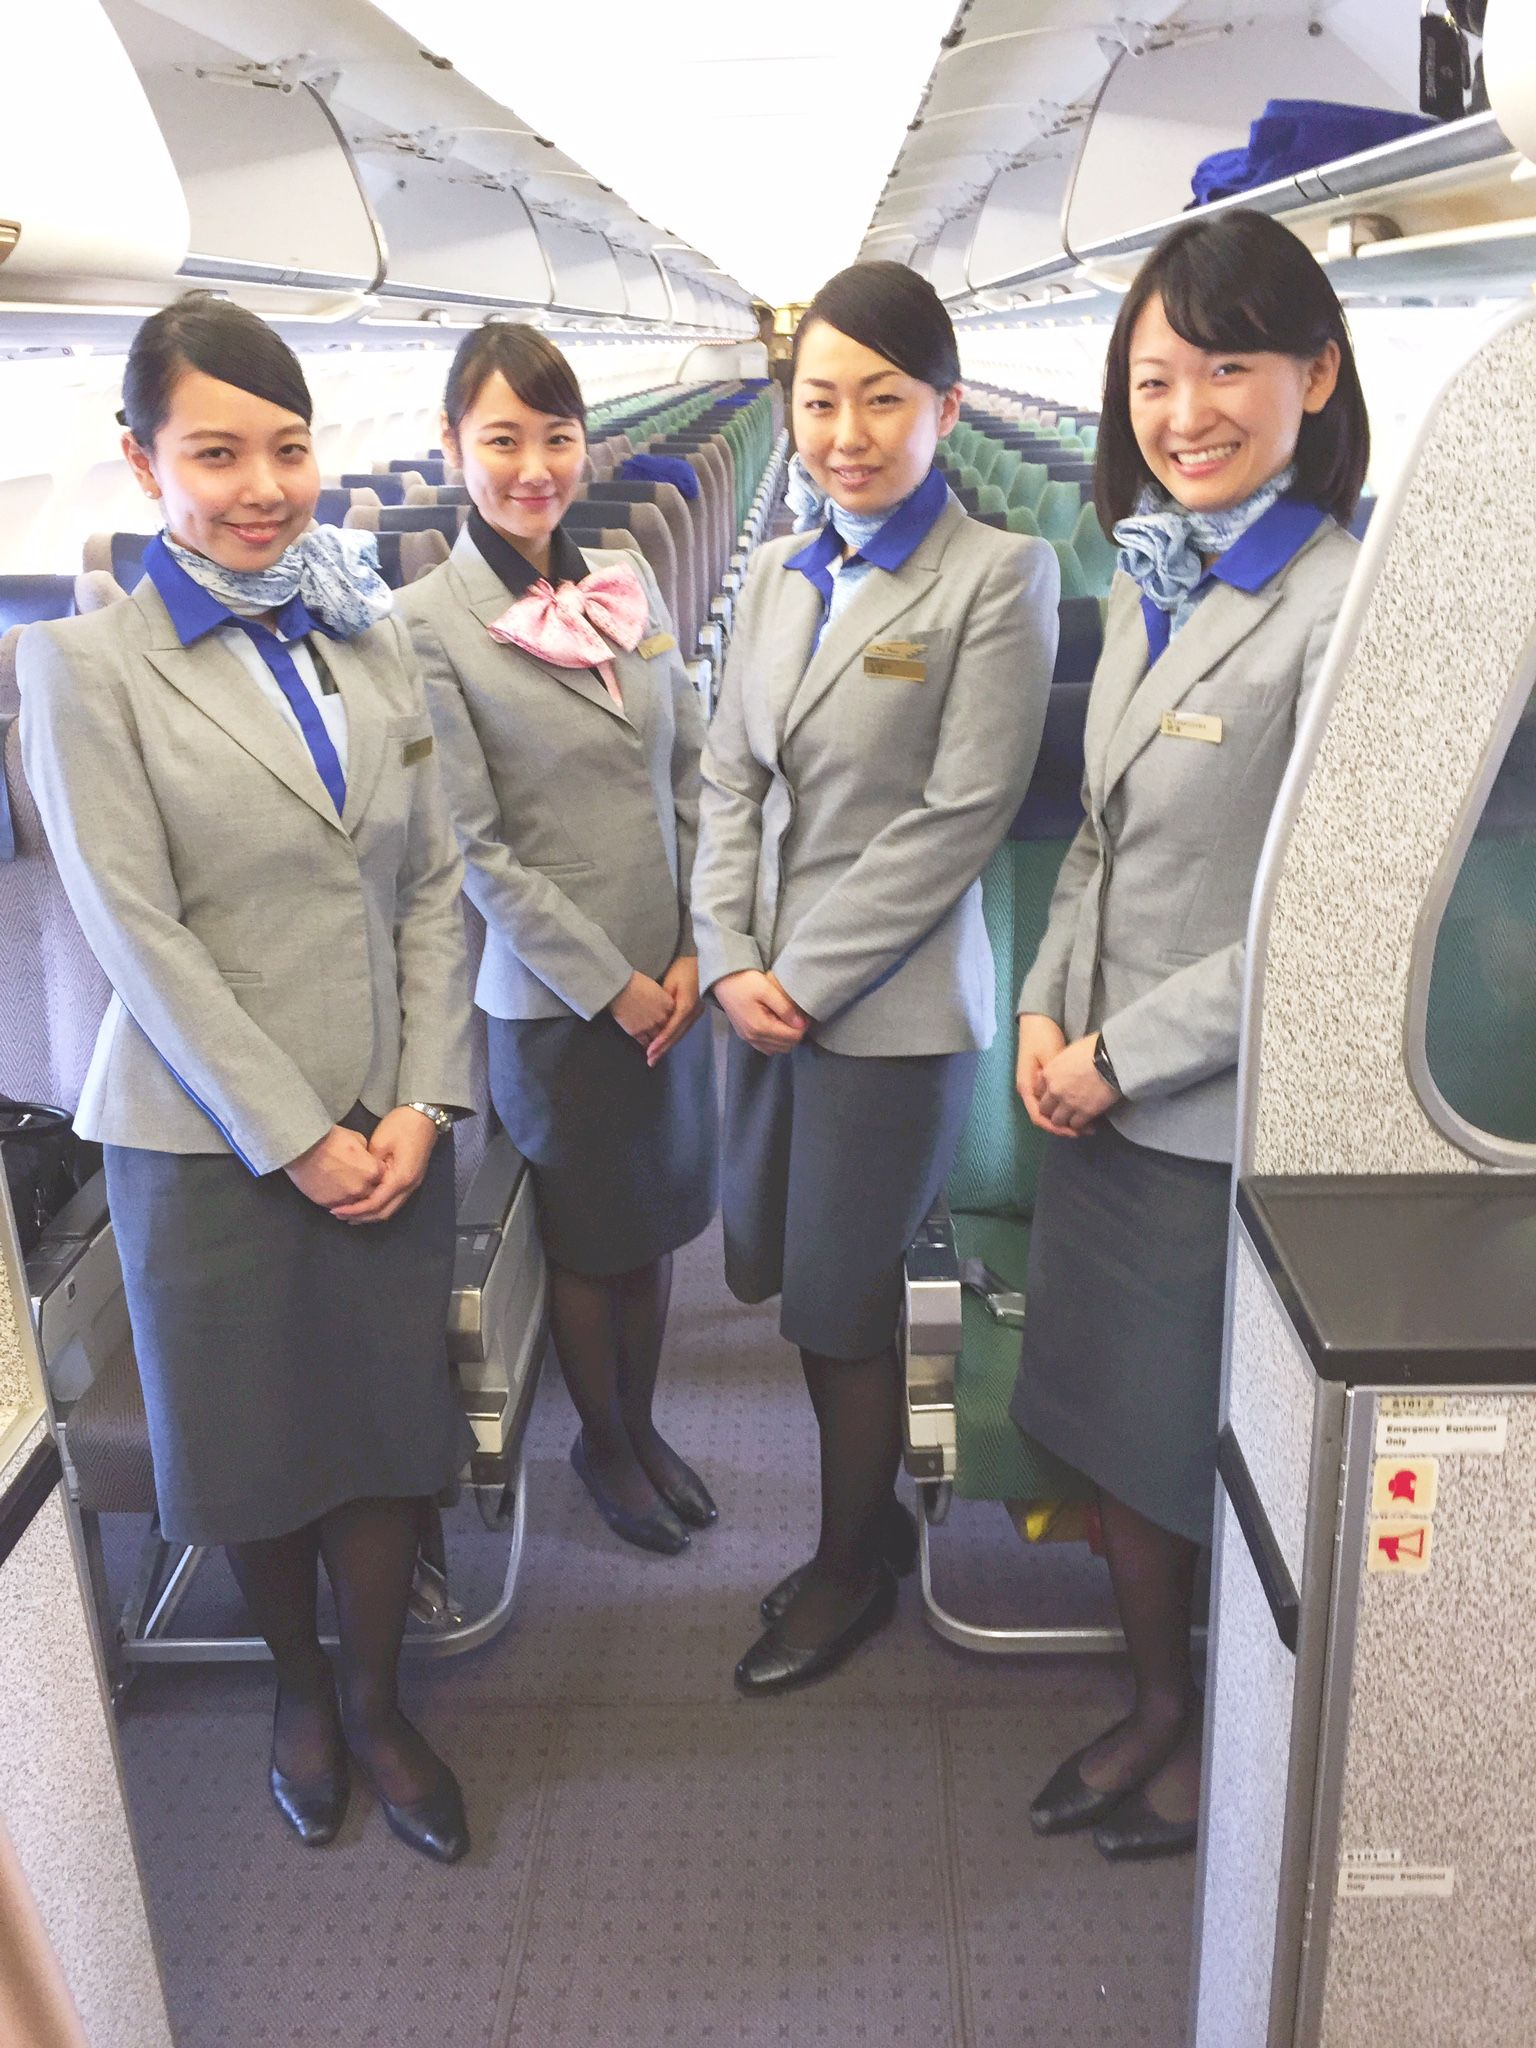 Image result for ANA All Nippon Airways cabin crew uniform